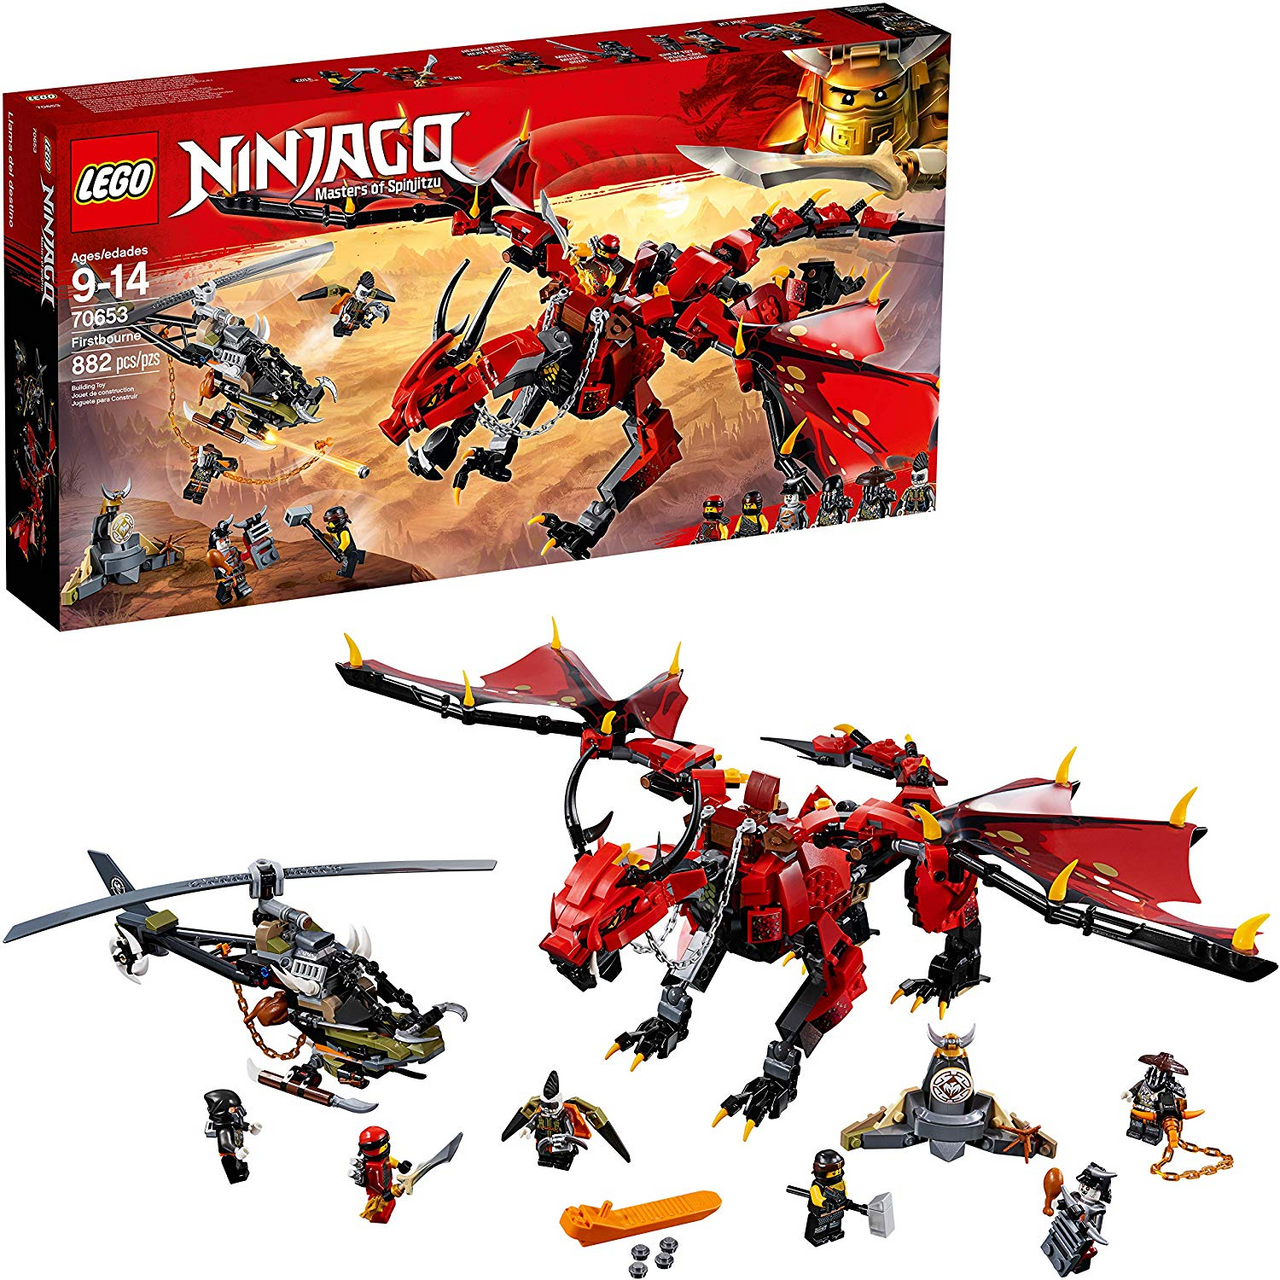 Lego 70653 Ninjago Masters Of Spinjitzu Firstbourne For Moms Buy dragon armor and get the best deals at the lowest prices on ebay! lego 70653 ninjago masters of spinjitzu firstbourne